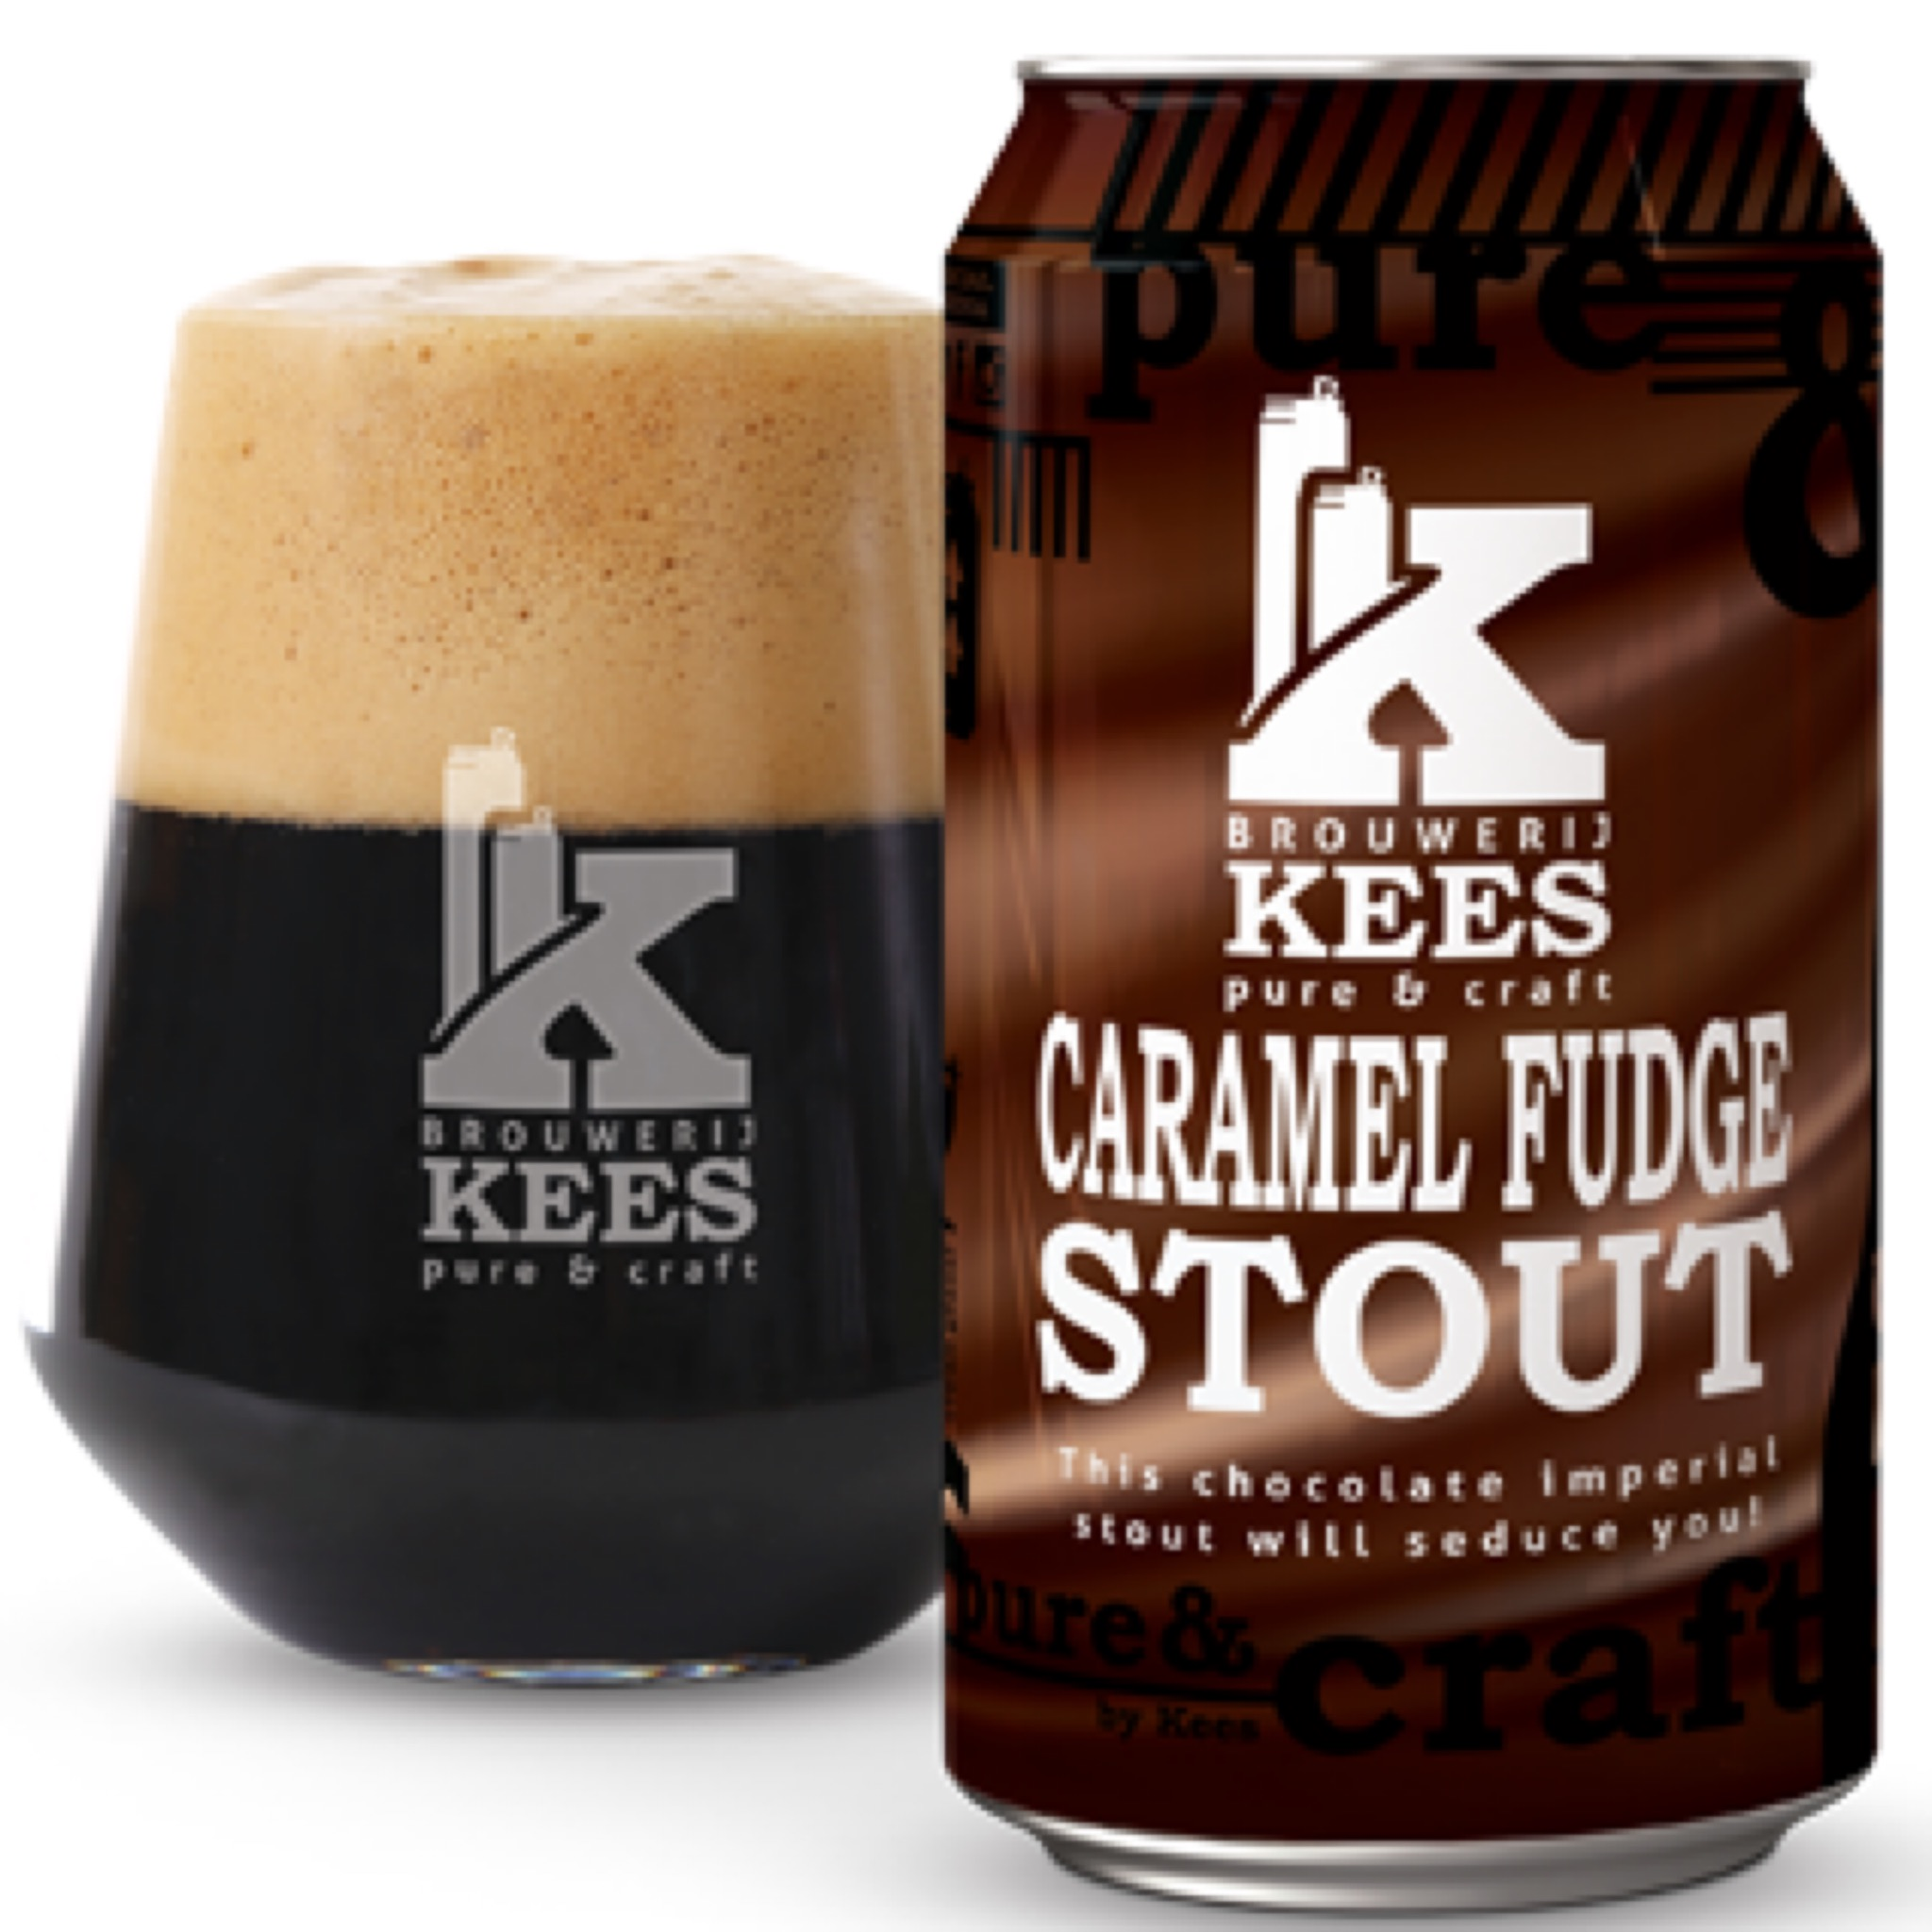 Caramel Fudge Stout 11.5% 330ml Brouwerij Kees